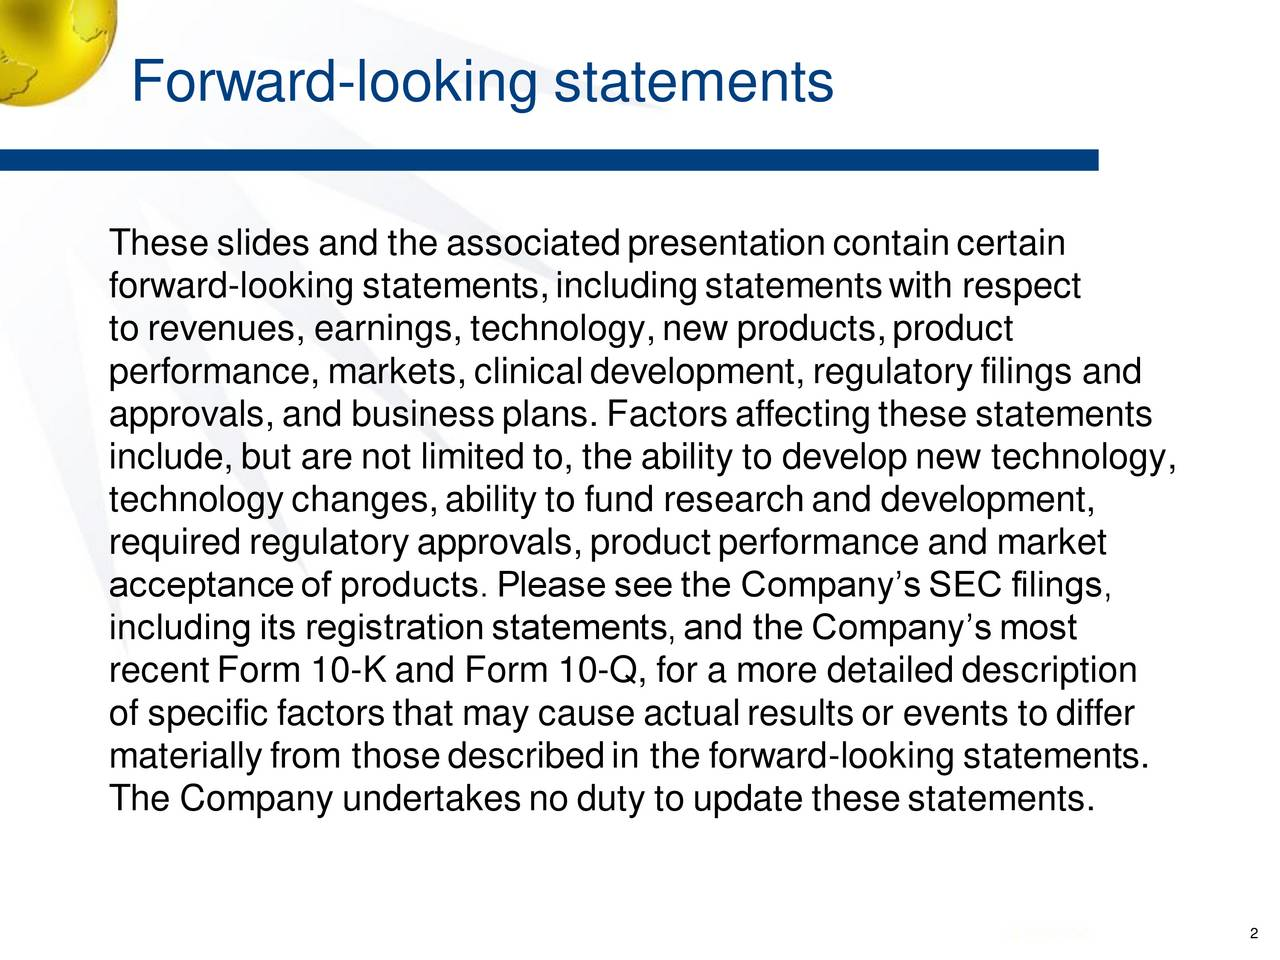 These slides and the associatedpresentationcontaincertain forward-looking statements,includingstatementswith respect to revenues, earnings, technology,new products,product performance, markets, clinicaldevelopment, regulatory filings and approvals, and business plans. Factors affectingthese statements include, but are not limited to, the ability to develop new technology, technology changes,ability to fund researchand development, required regulatory approvals, product performance and market acceptanceof products. Please see the Companys SEC filings, including its registrationstatements,and the Companys most recent Form 10-K and Form 10-Q, for a more detailed description of specific factors that may cause actualresults or events to differ materially from thosedescribedin the forward-looking statements. The Company undertakes no duty to update thesestatements. 2